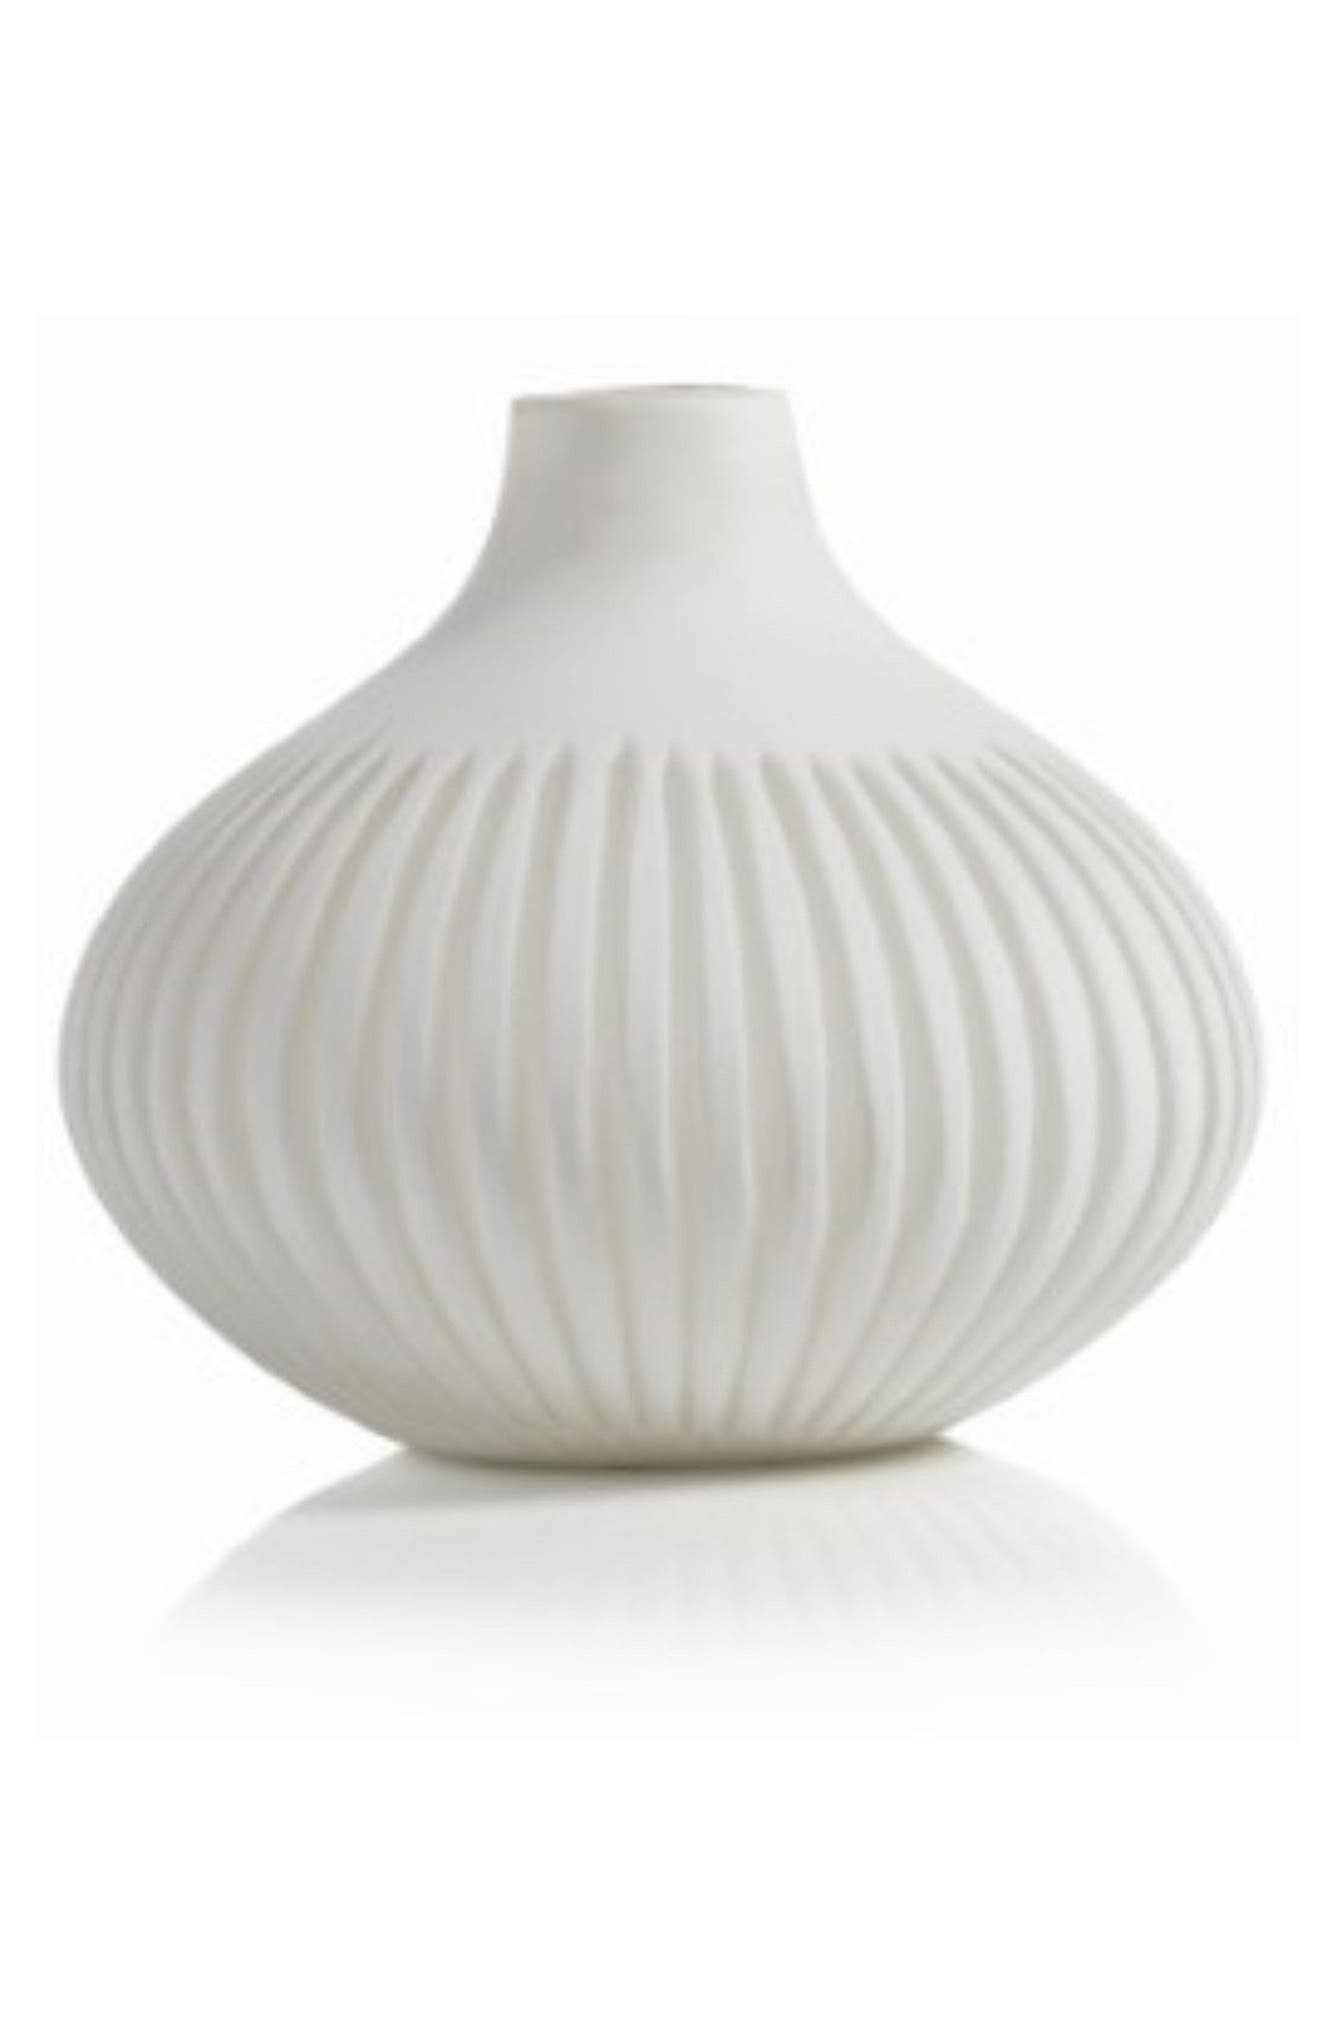 Sakana Vase,                             Main thumbnail 1, color,                             White